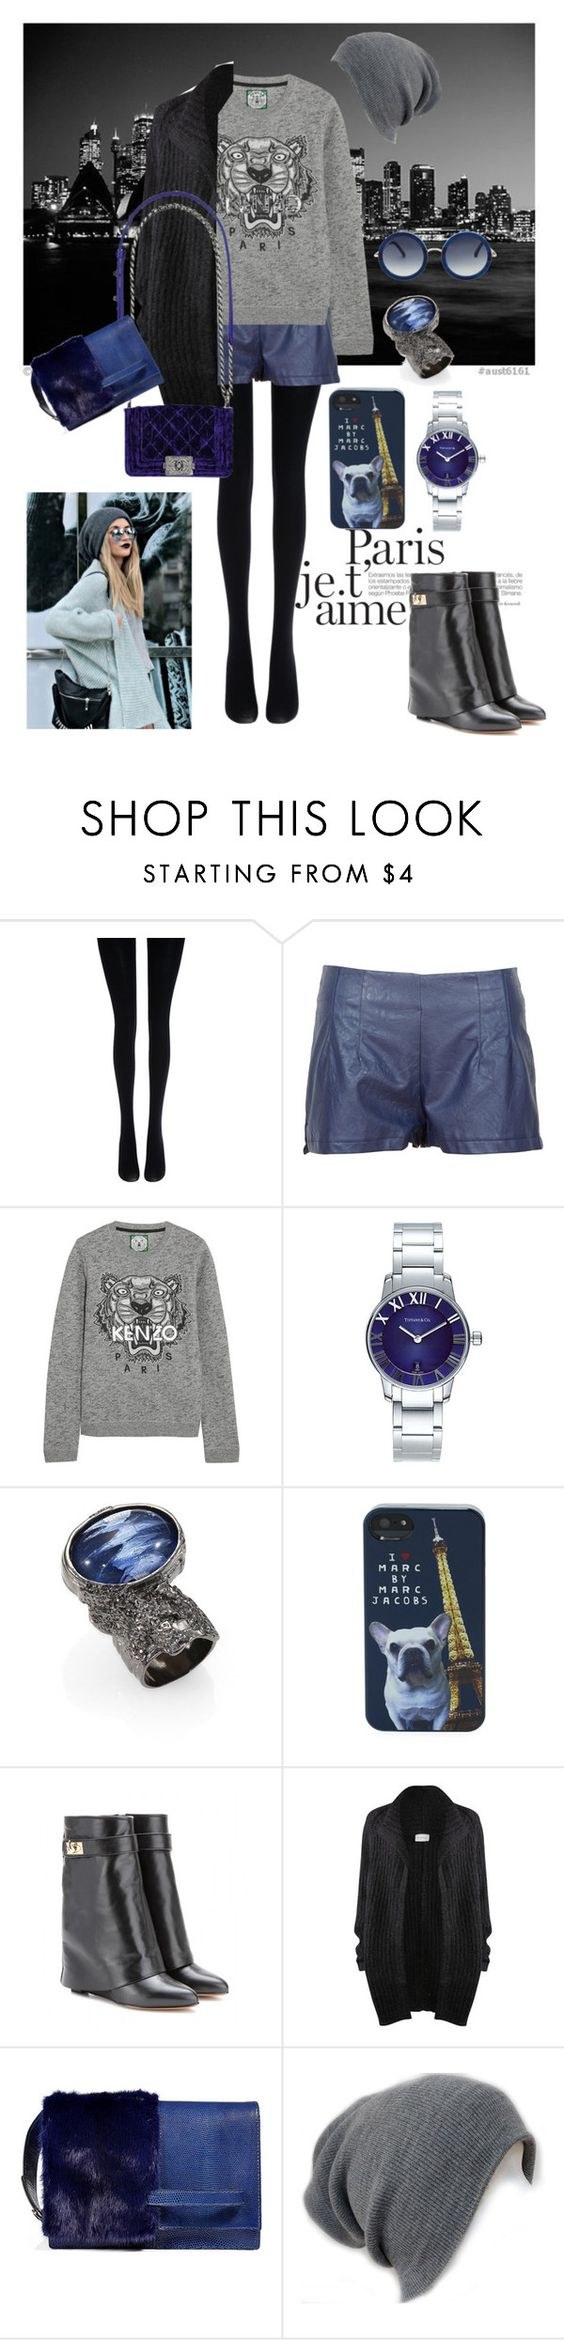 """""""Leather shorts"""" by kajfkajf ❤ liked on Polyvore featuring Fogal, Kenzo, Tiffany & Co., Yves Saint Laurent, Marc by Marc Jacobs, Givenchy, American Vintage, Chanel, Valentino and The Row"""